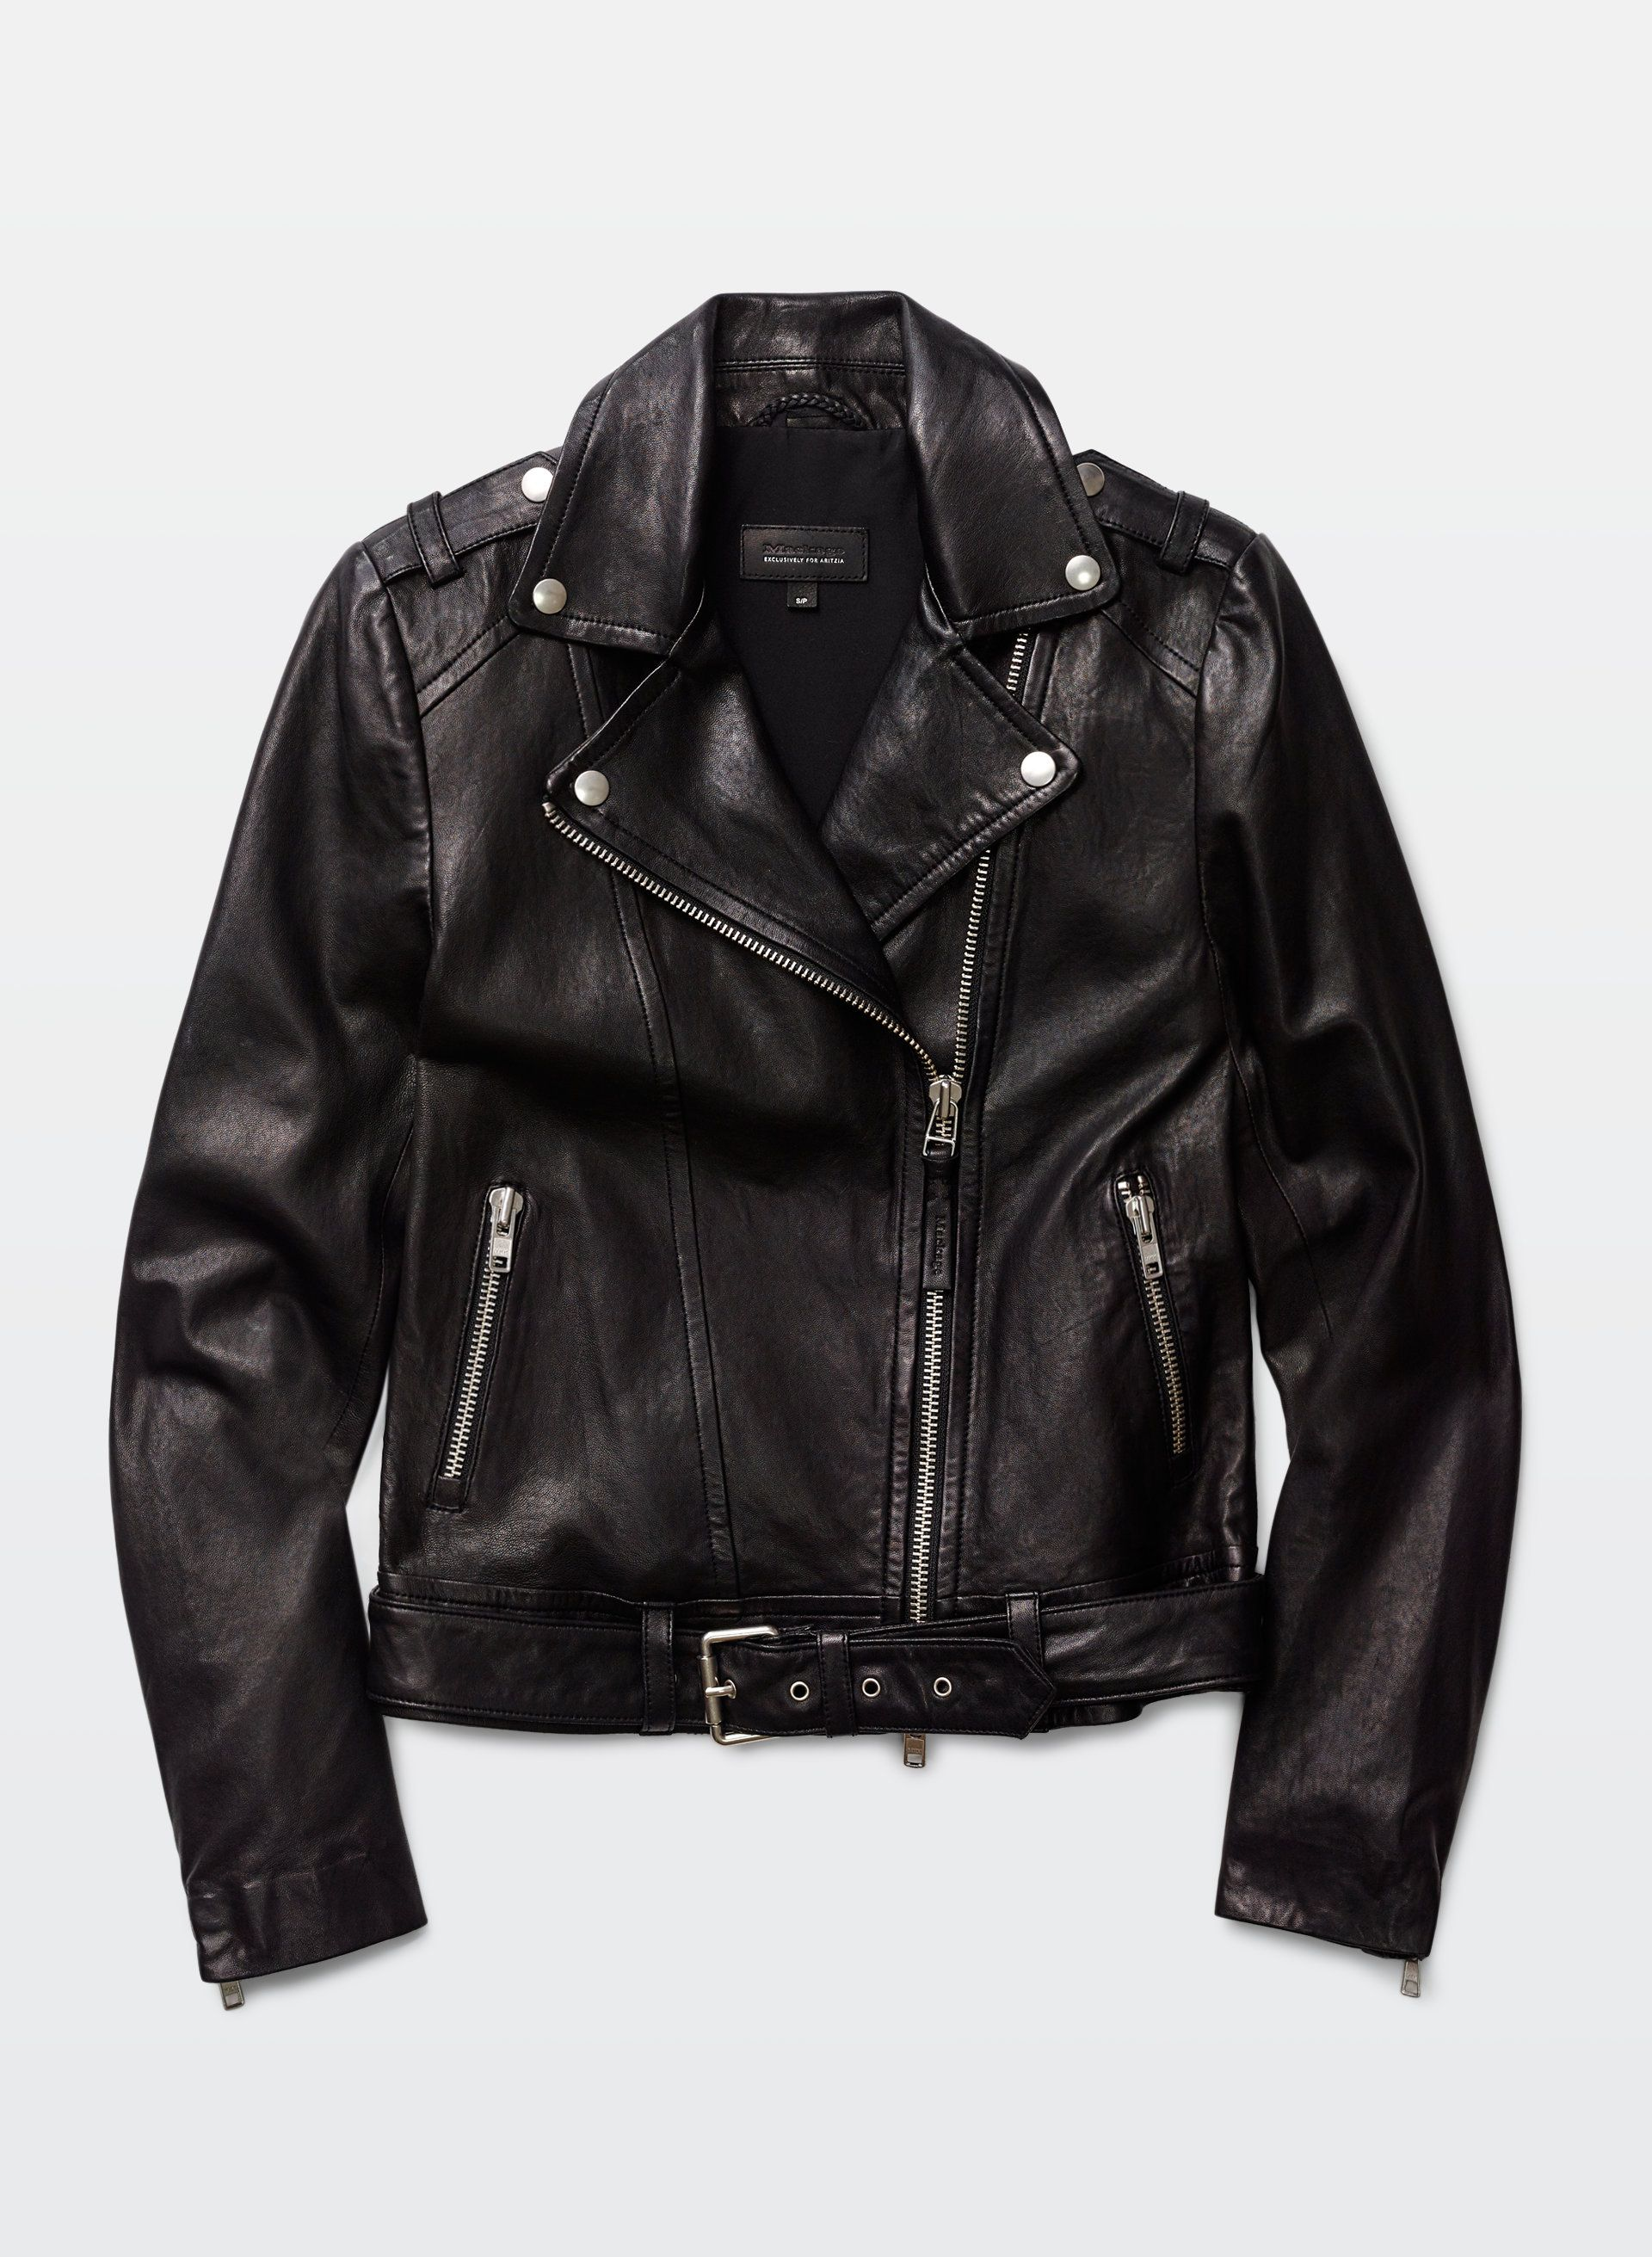 How to Maintain My Leather Jacket?